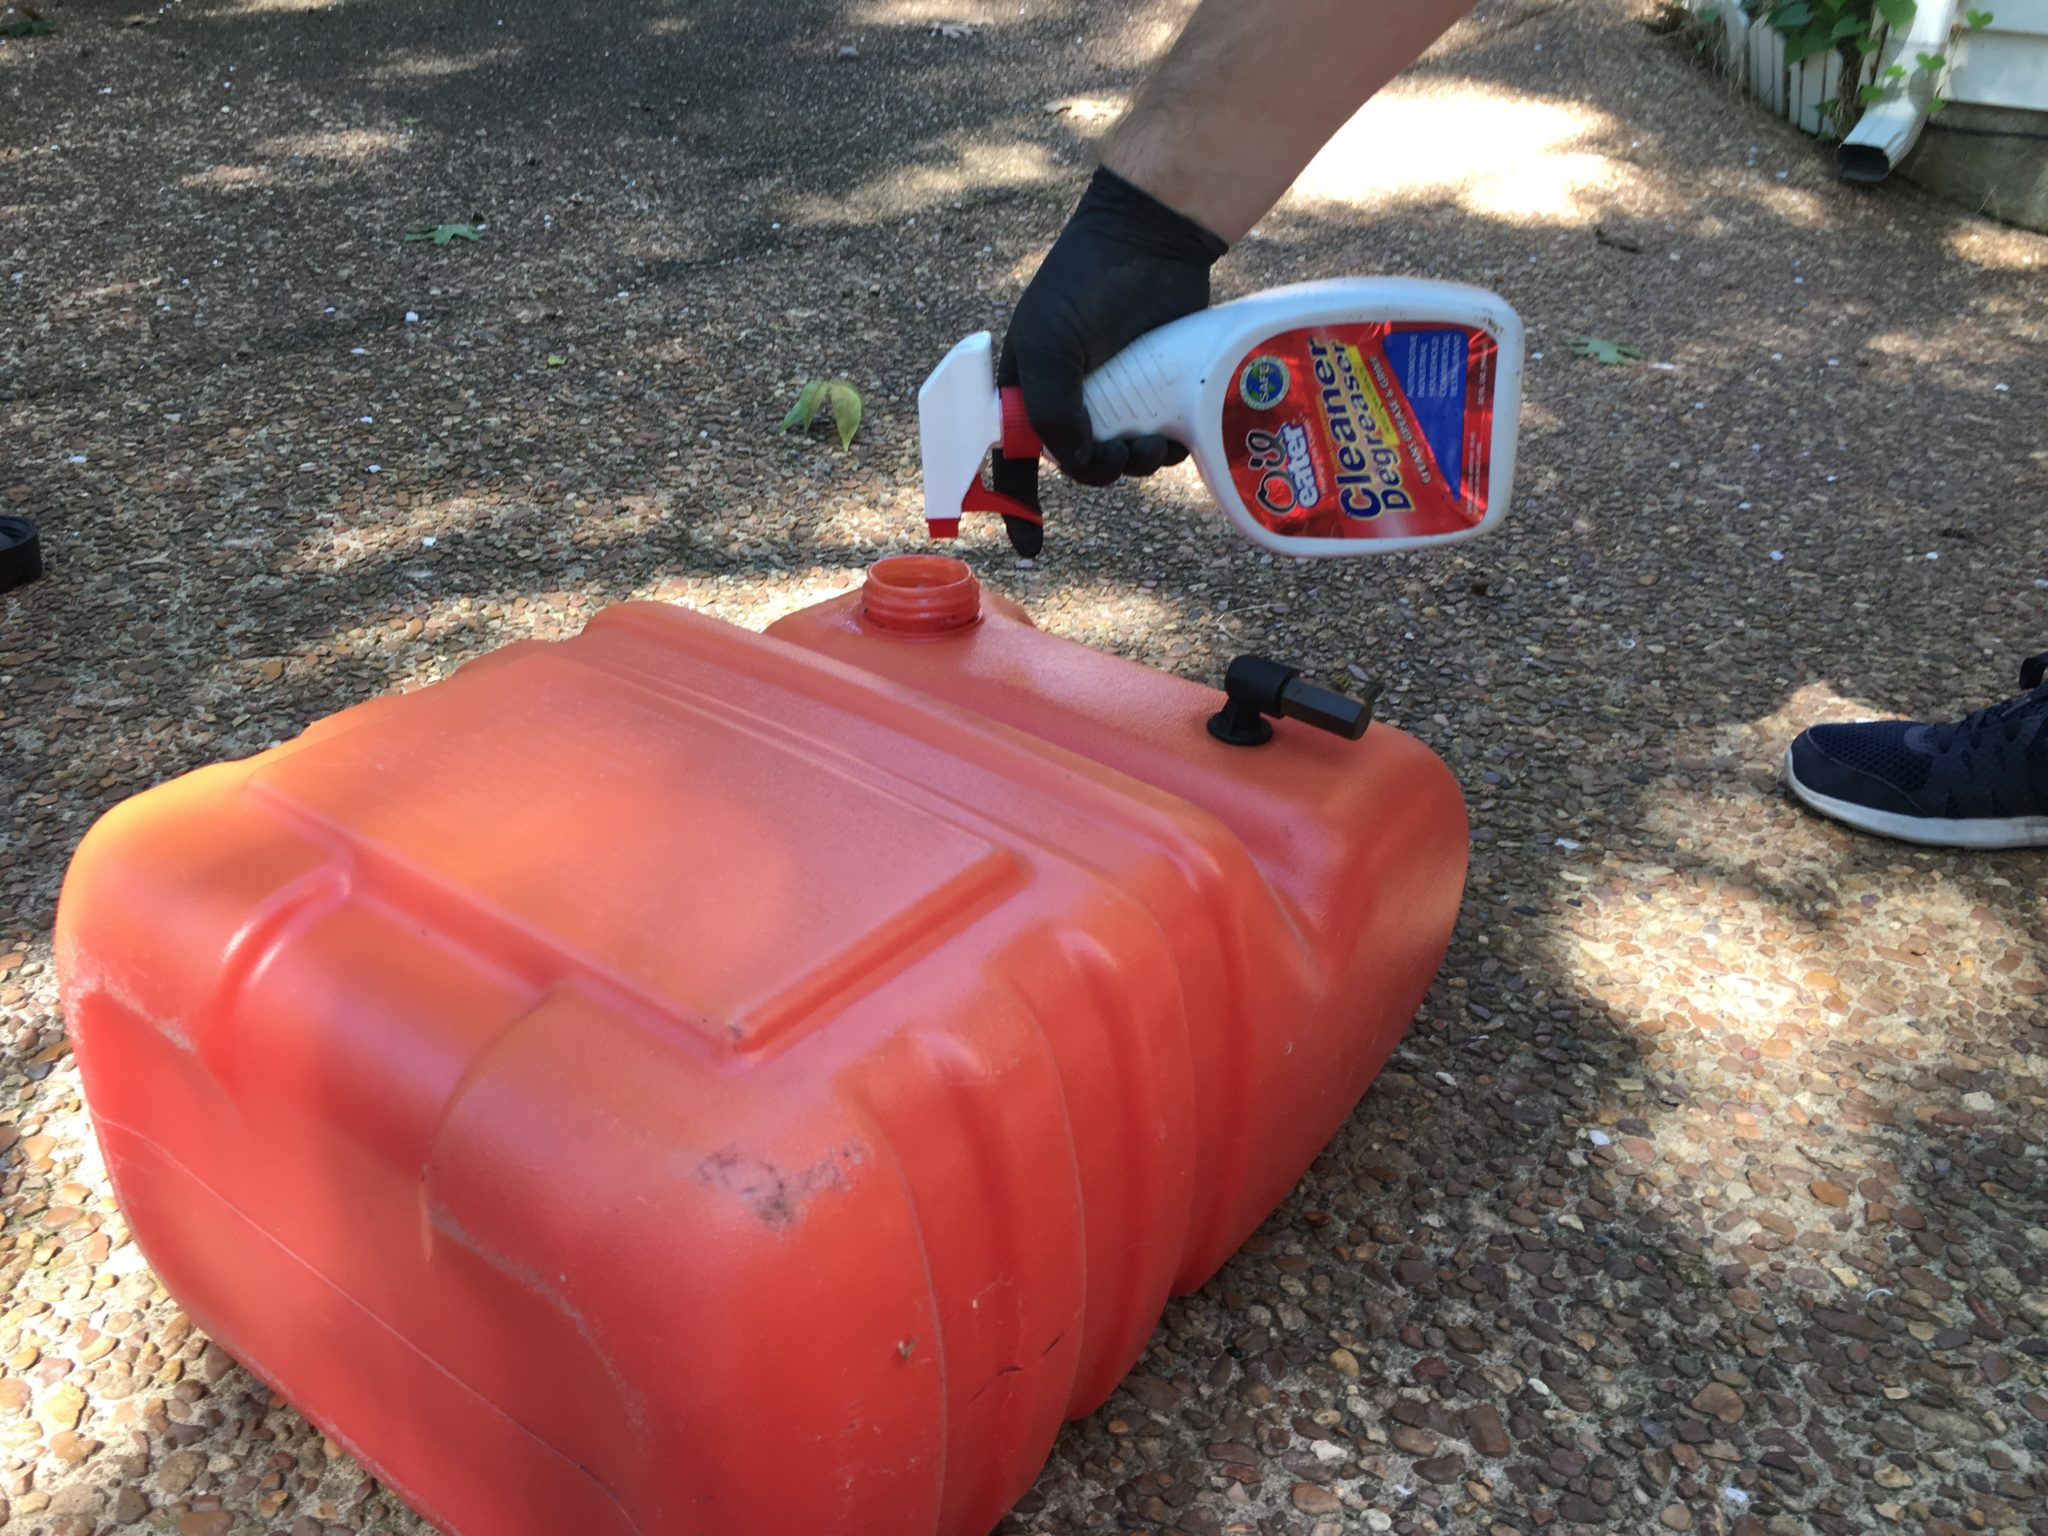 How to clean easily a portable gas tank before winter